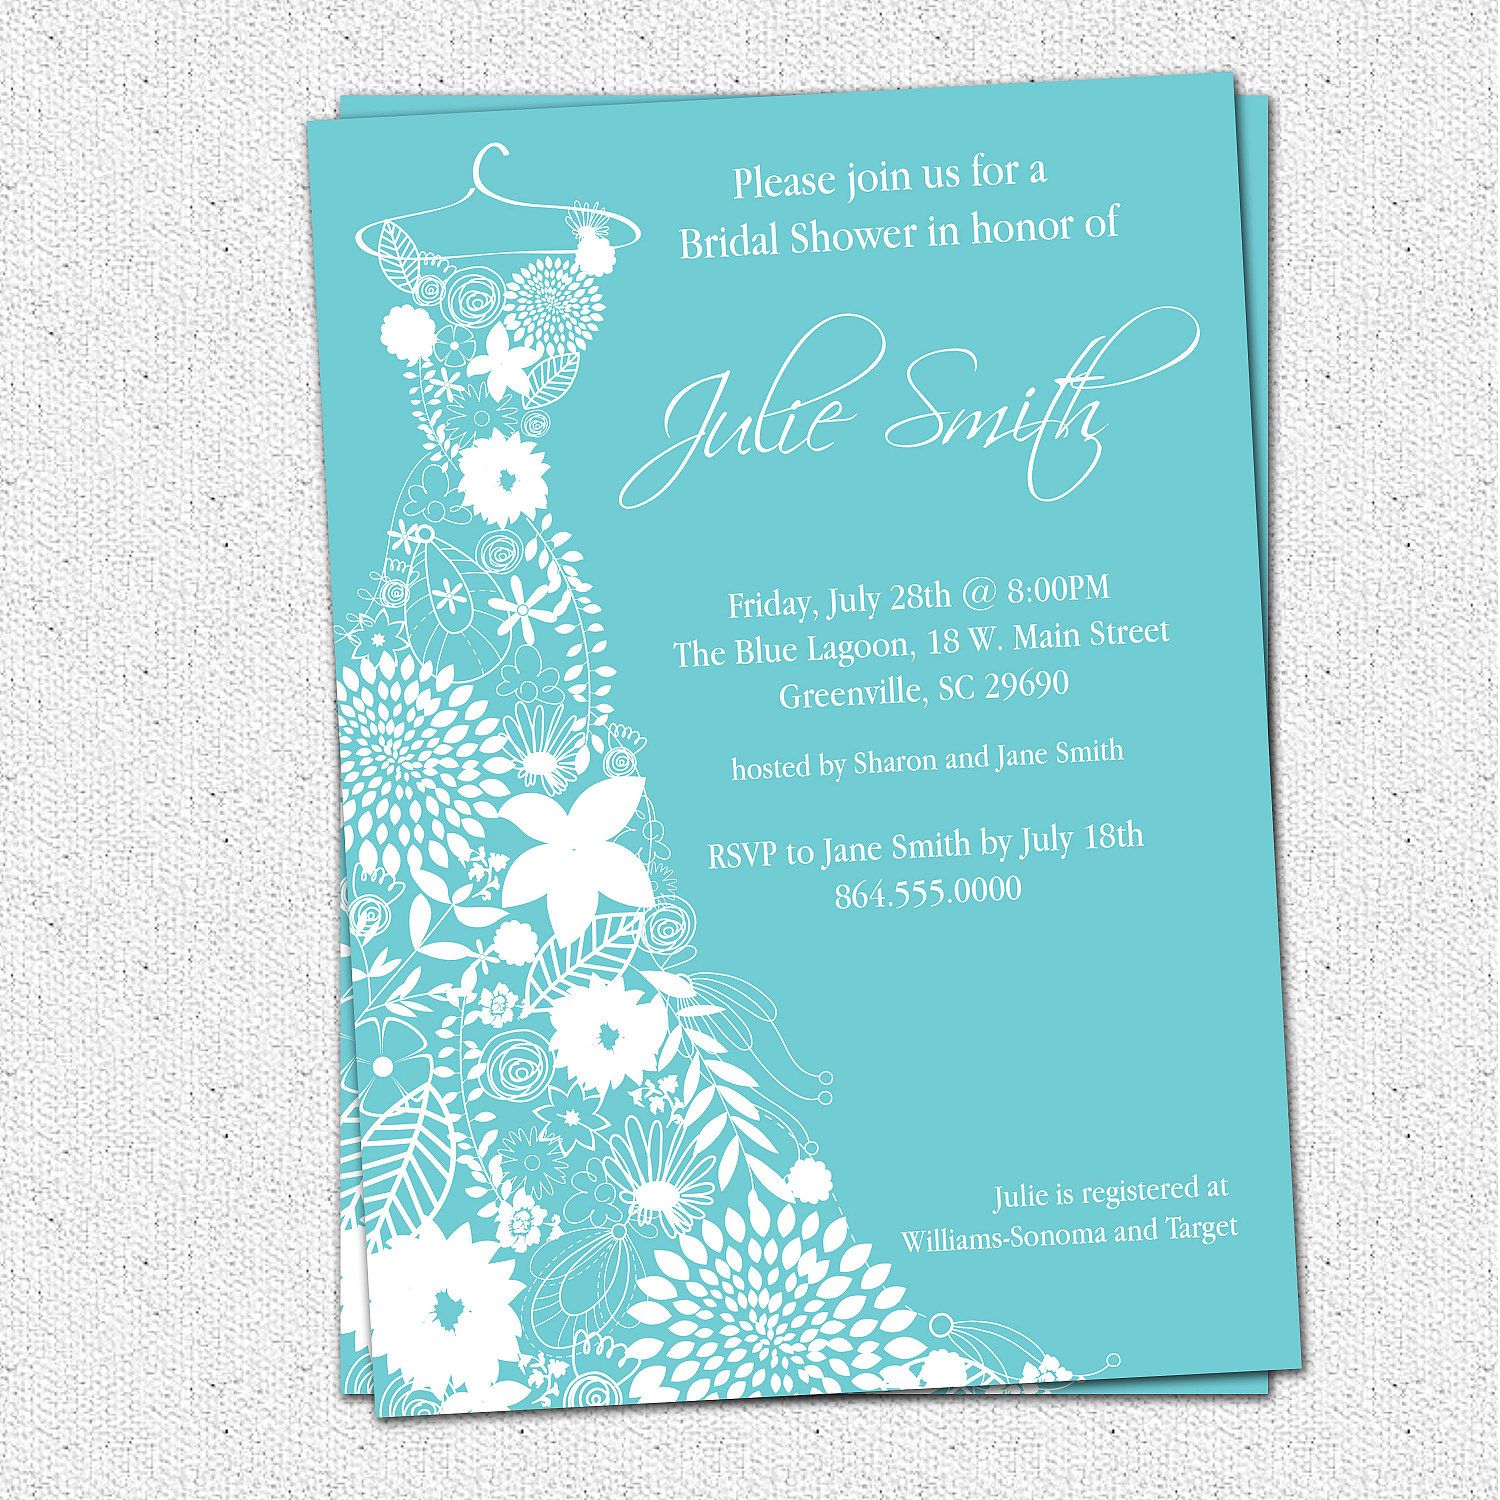 It's just an image of Juicy Invitation Maker Printable